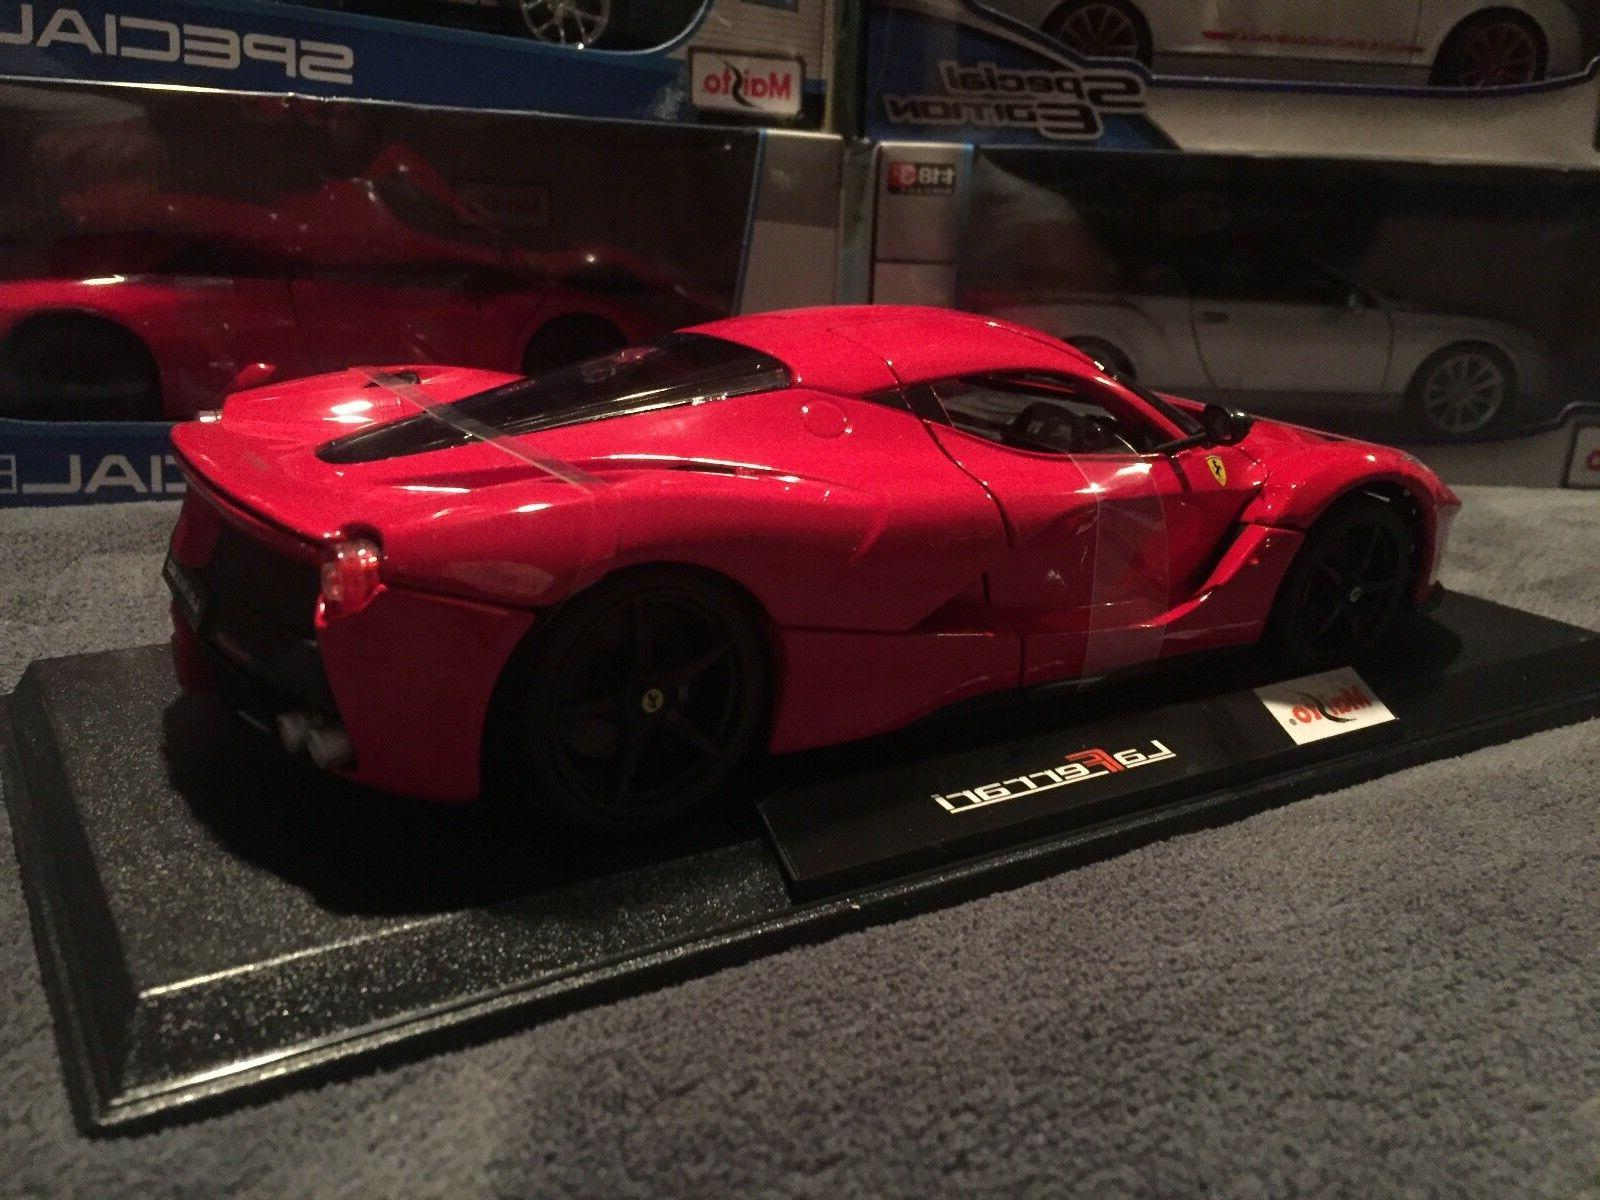 Ferrari LaFerrari Maisto Cast model